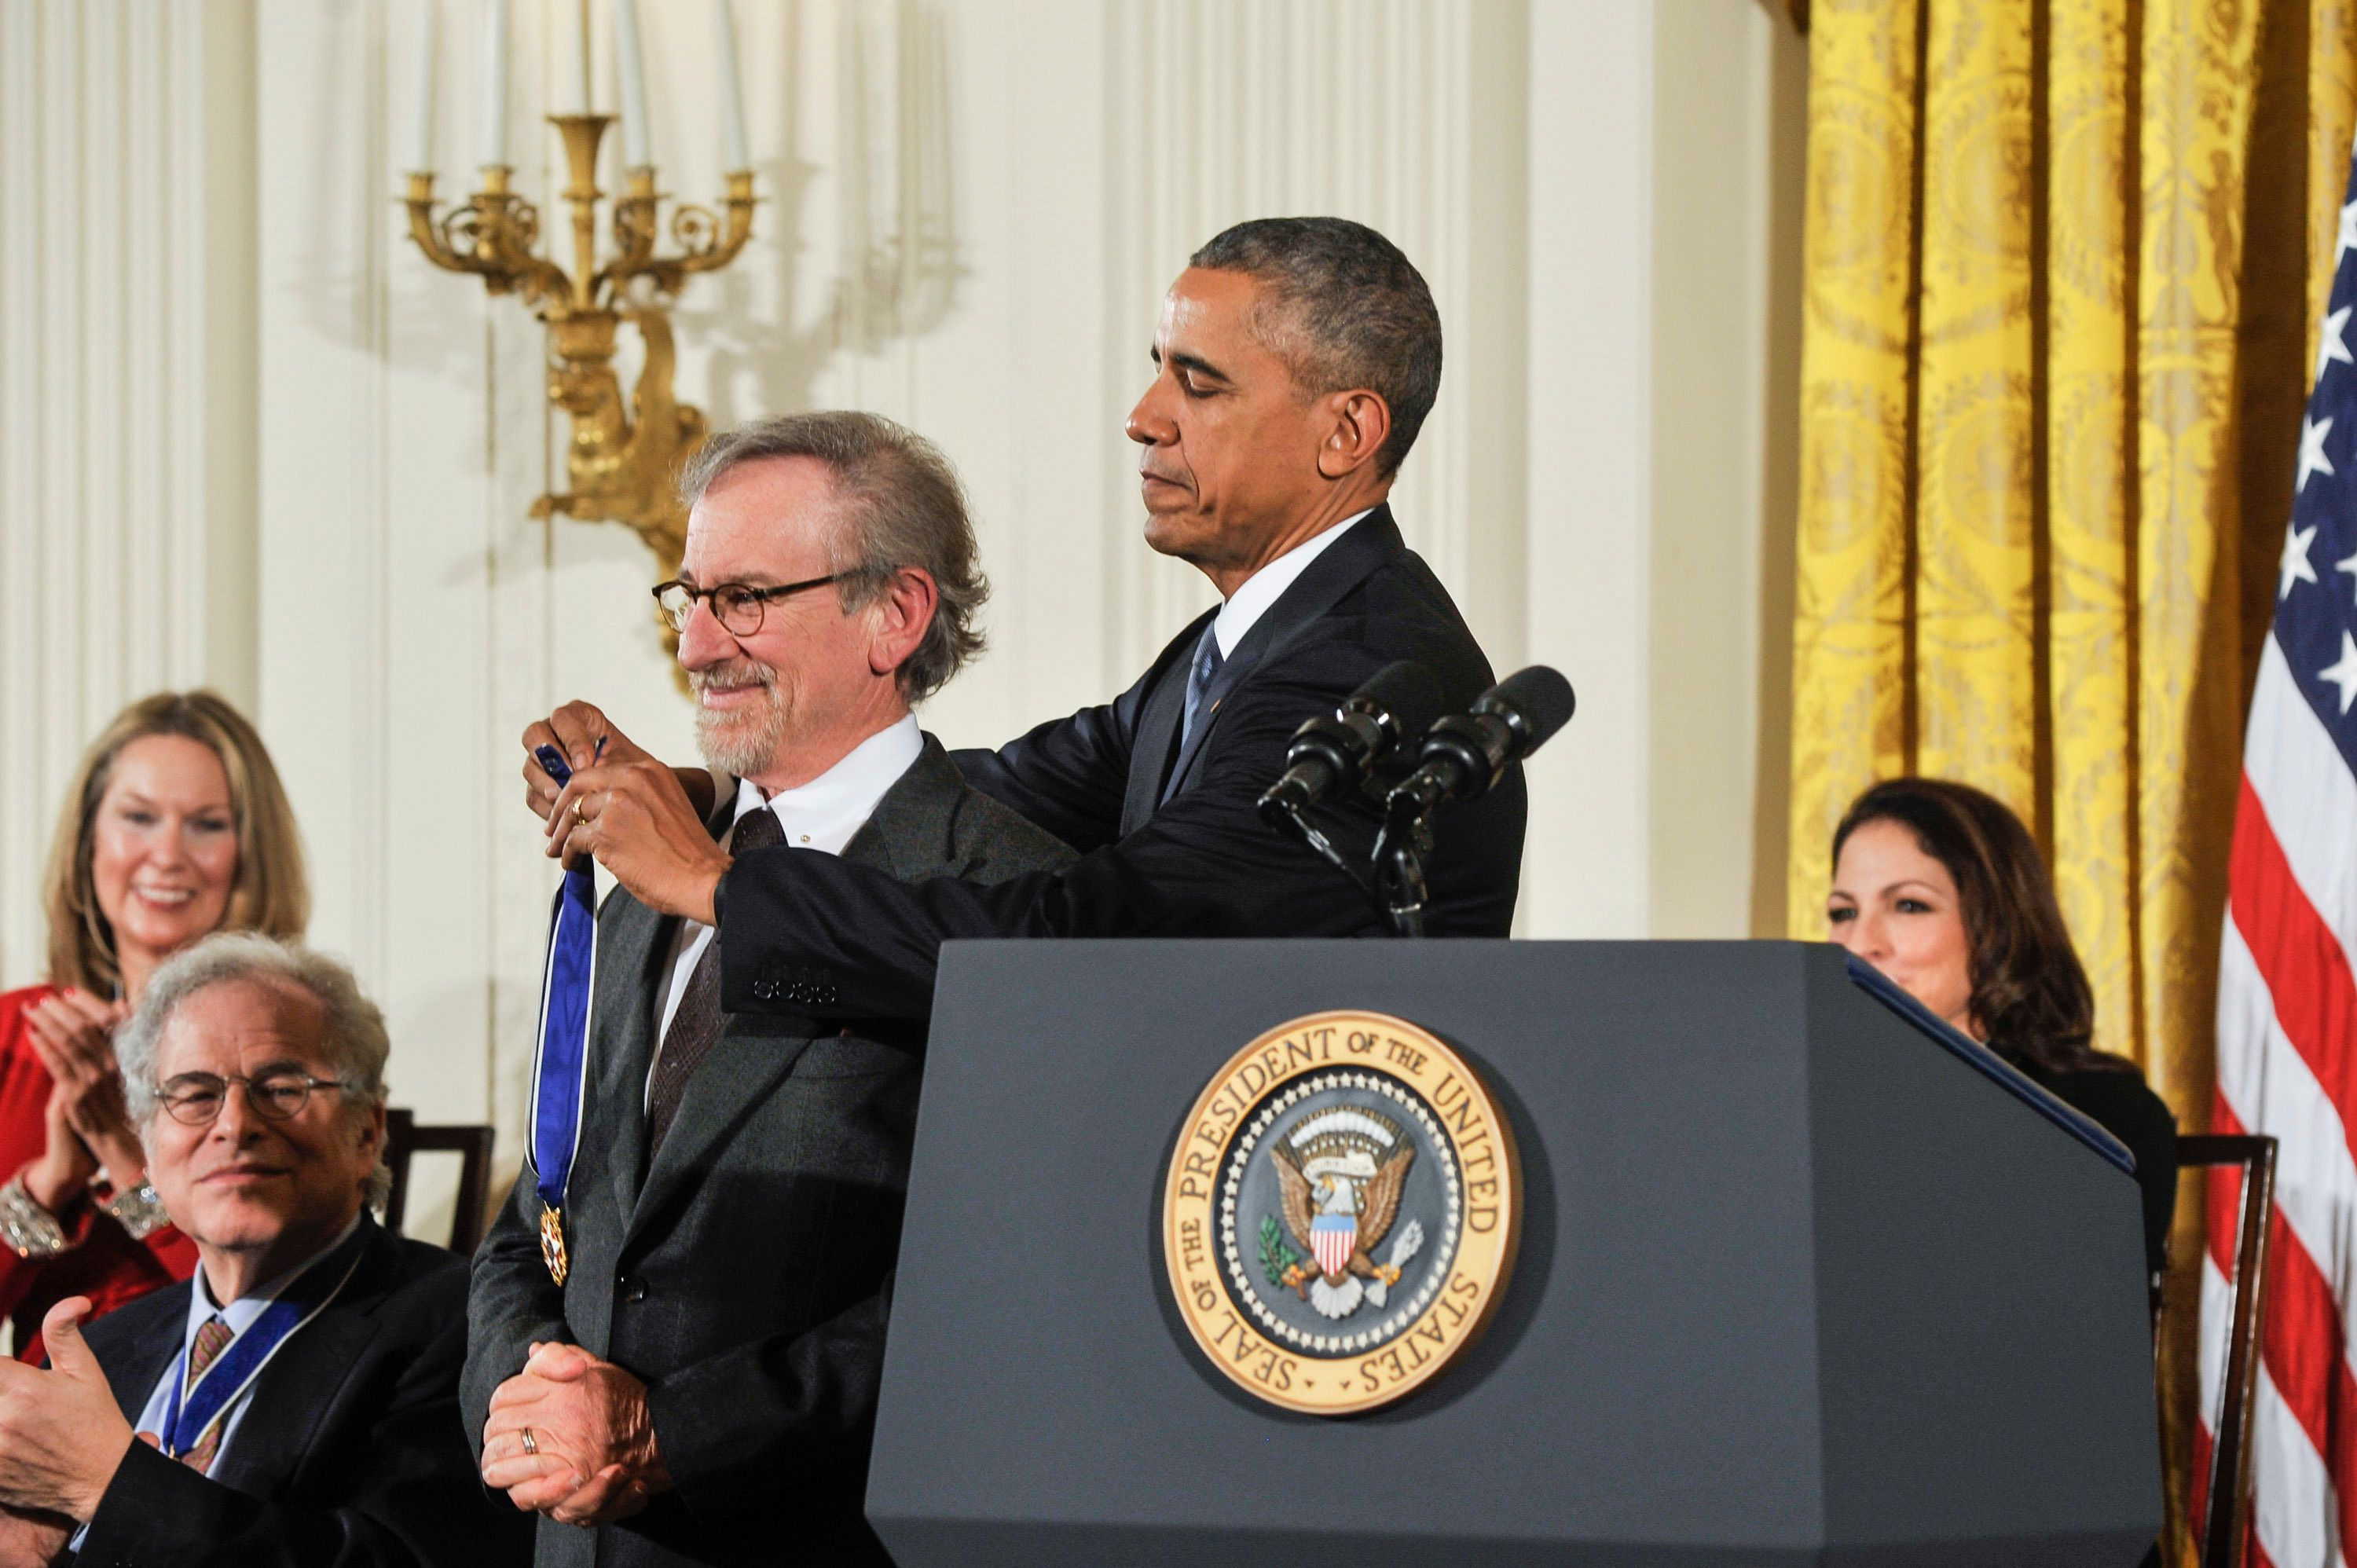 WASHINGTON, DC- NOVEMBER 24: President Barack Obama presents director Steven Spielberg with the Presidential Medal of Freedom during the 2015 Presidential Medal Of Freedom ceremony at the White House on November 24, 2015 in Washington, DC.   (Photo by Kris Connor/WireImage)